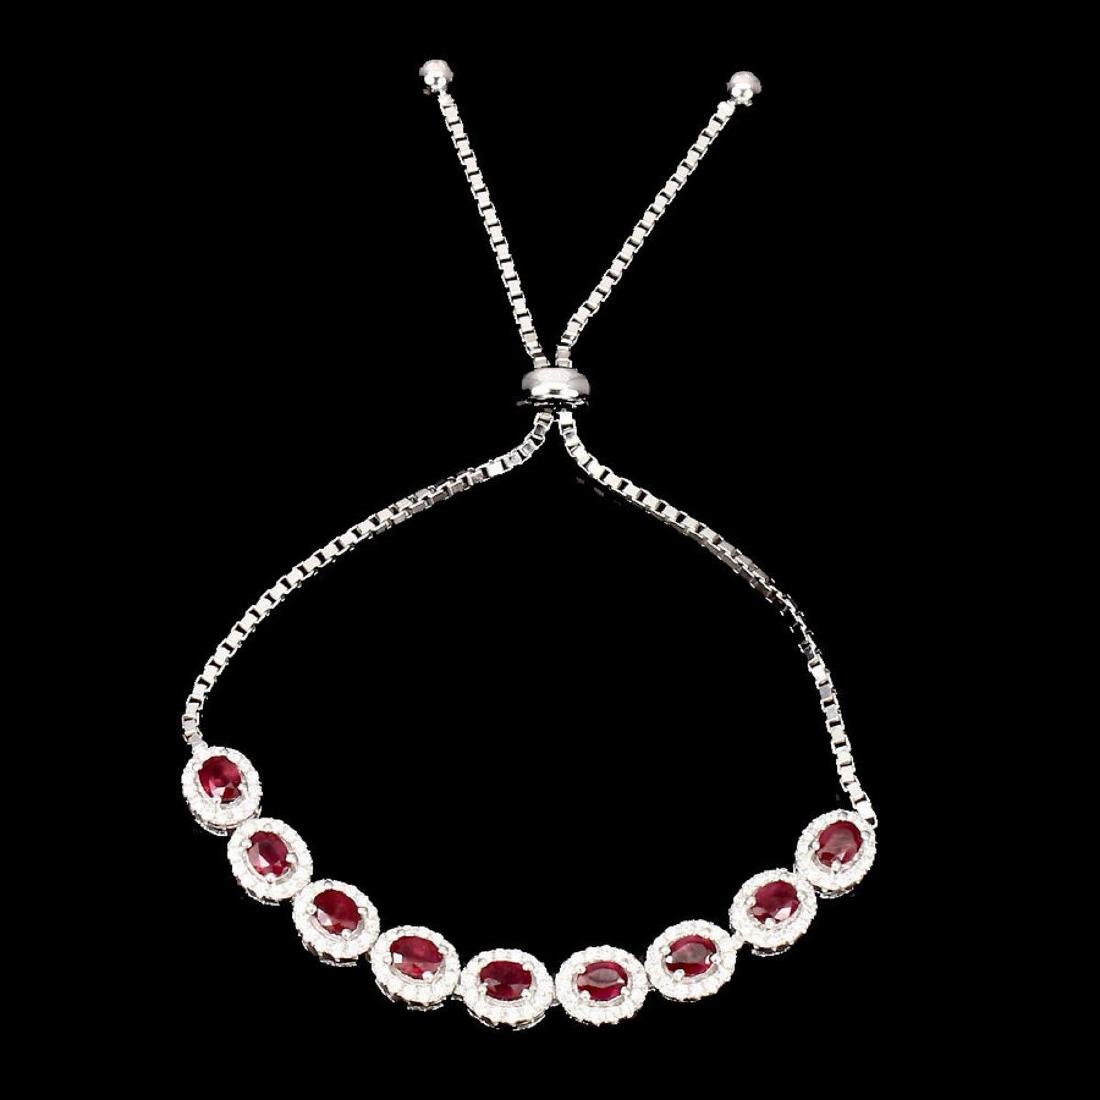 Natural Oval 4x3mm Top Blood Red Ruby Bracelet - 2